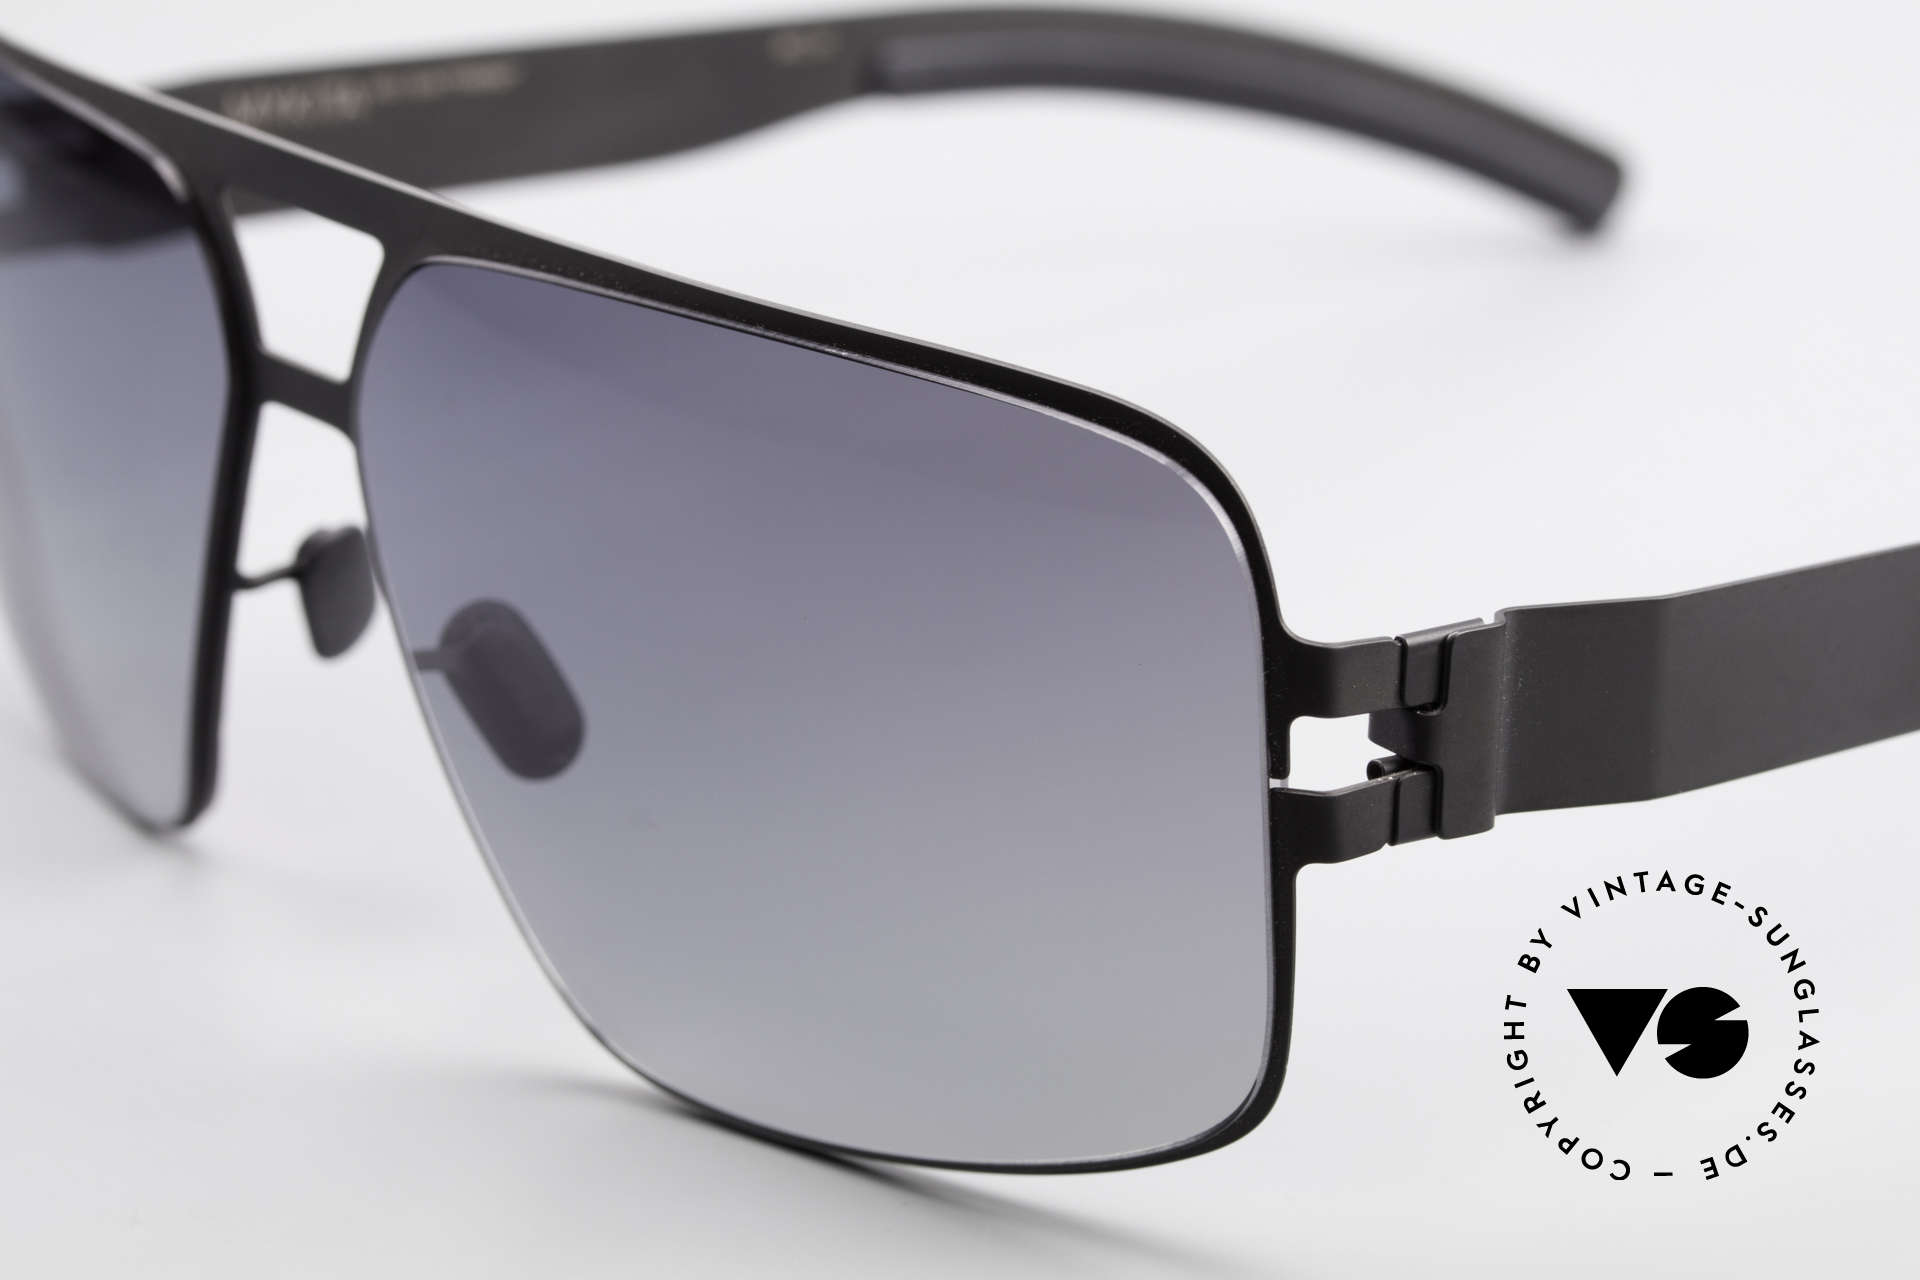 Mykita Tyrone Mykita Vintage Frame From 2011, innovative and flexible metal frame = One size fits all!, Made for Men